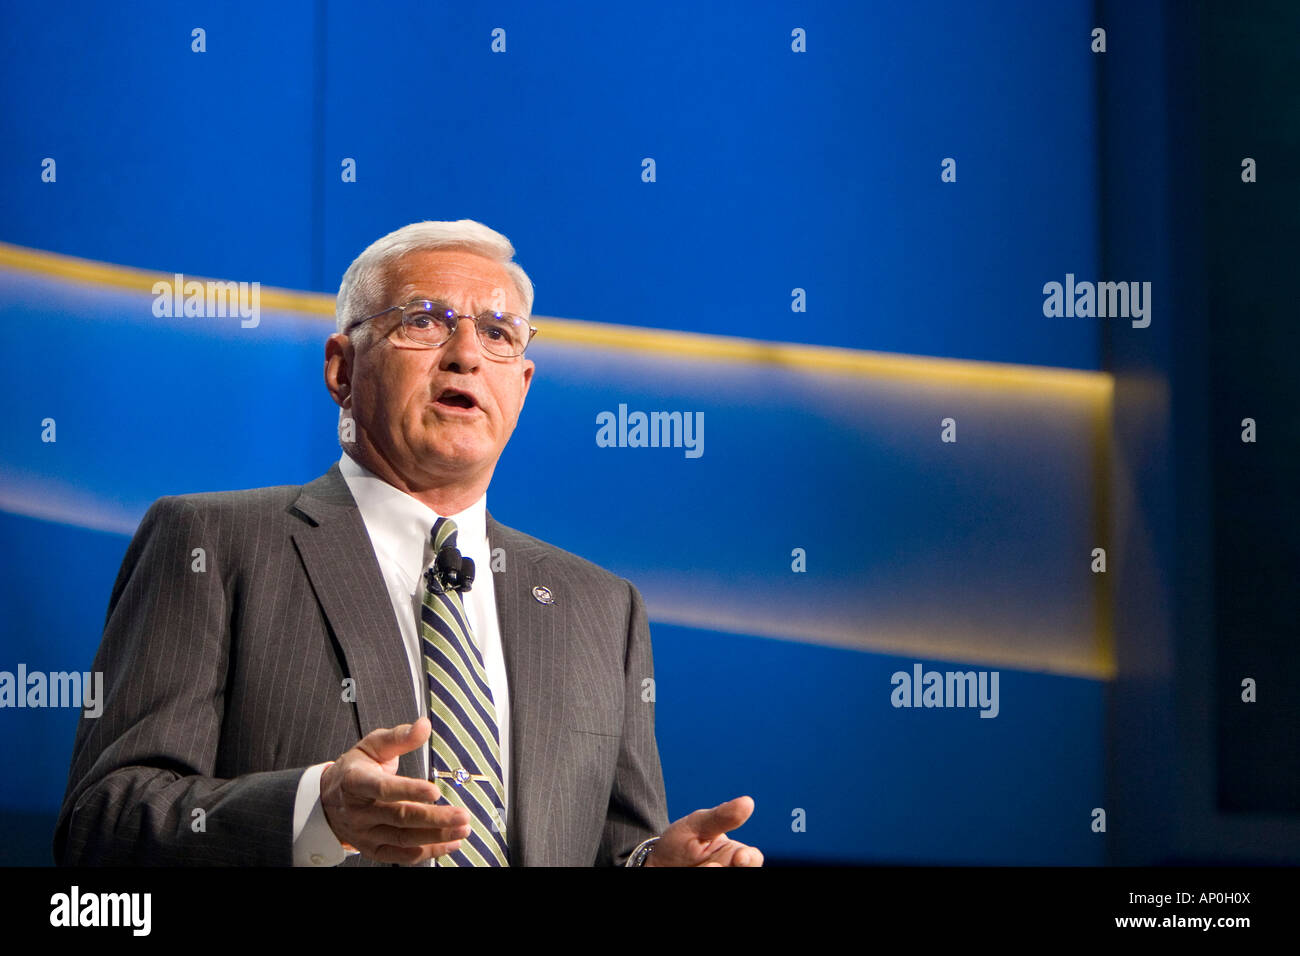 Detroit Michigan General Motors Vice Chairman Robert Lutz at the North American International Auto Show - Stock Image